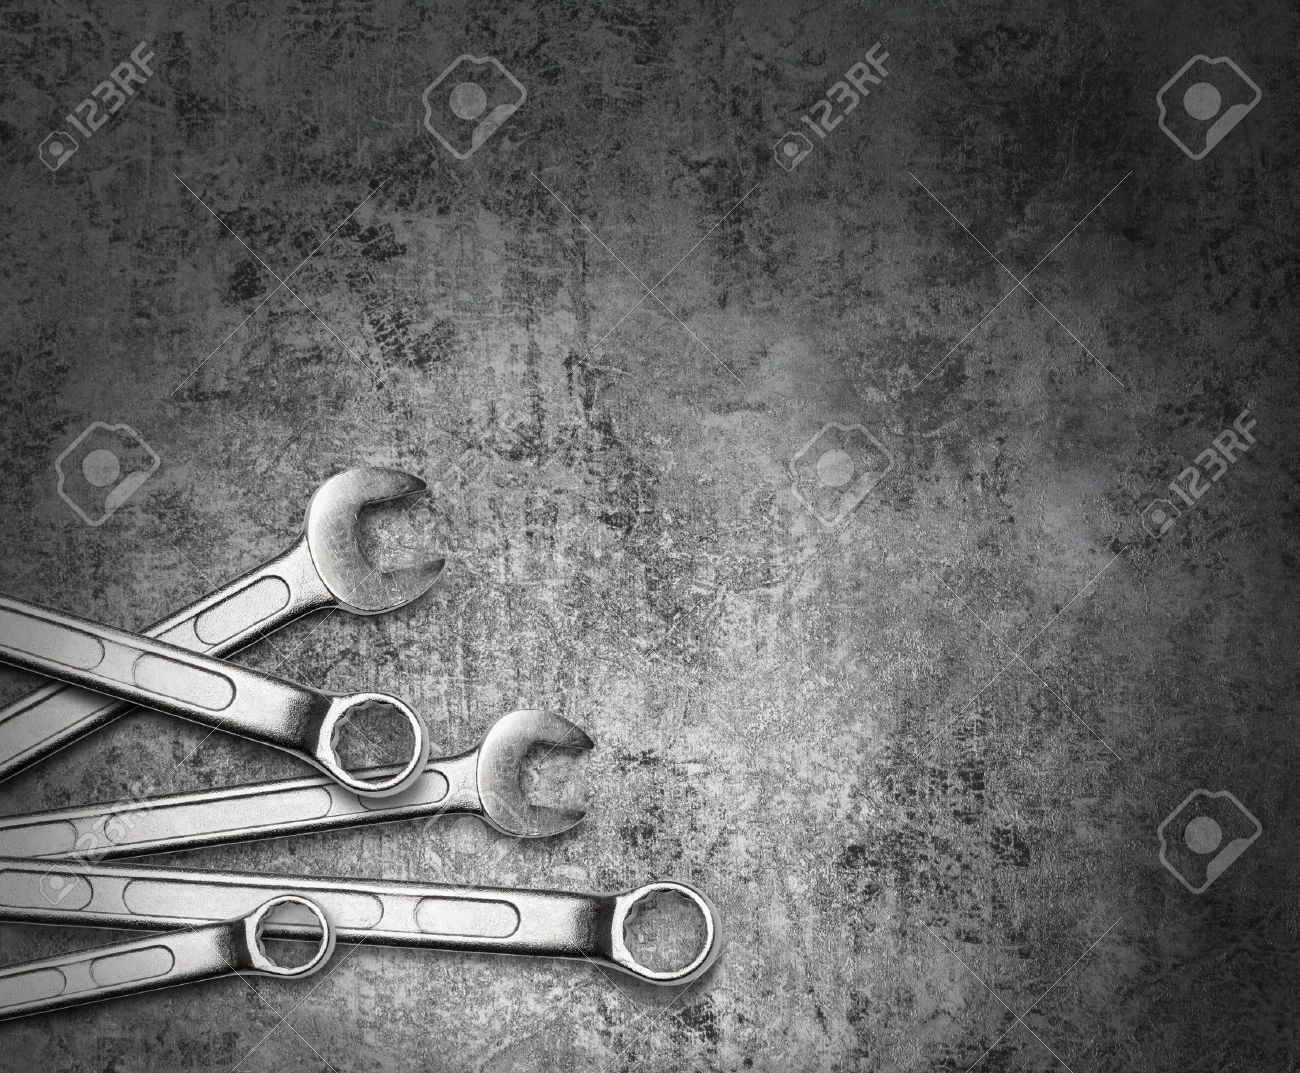 Wrench spanner tools on grunge silver metal background Stock Photo - 15016795